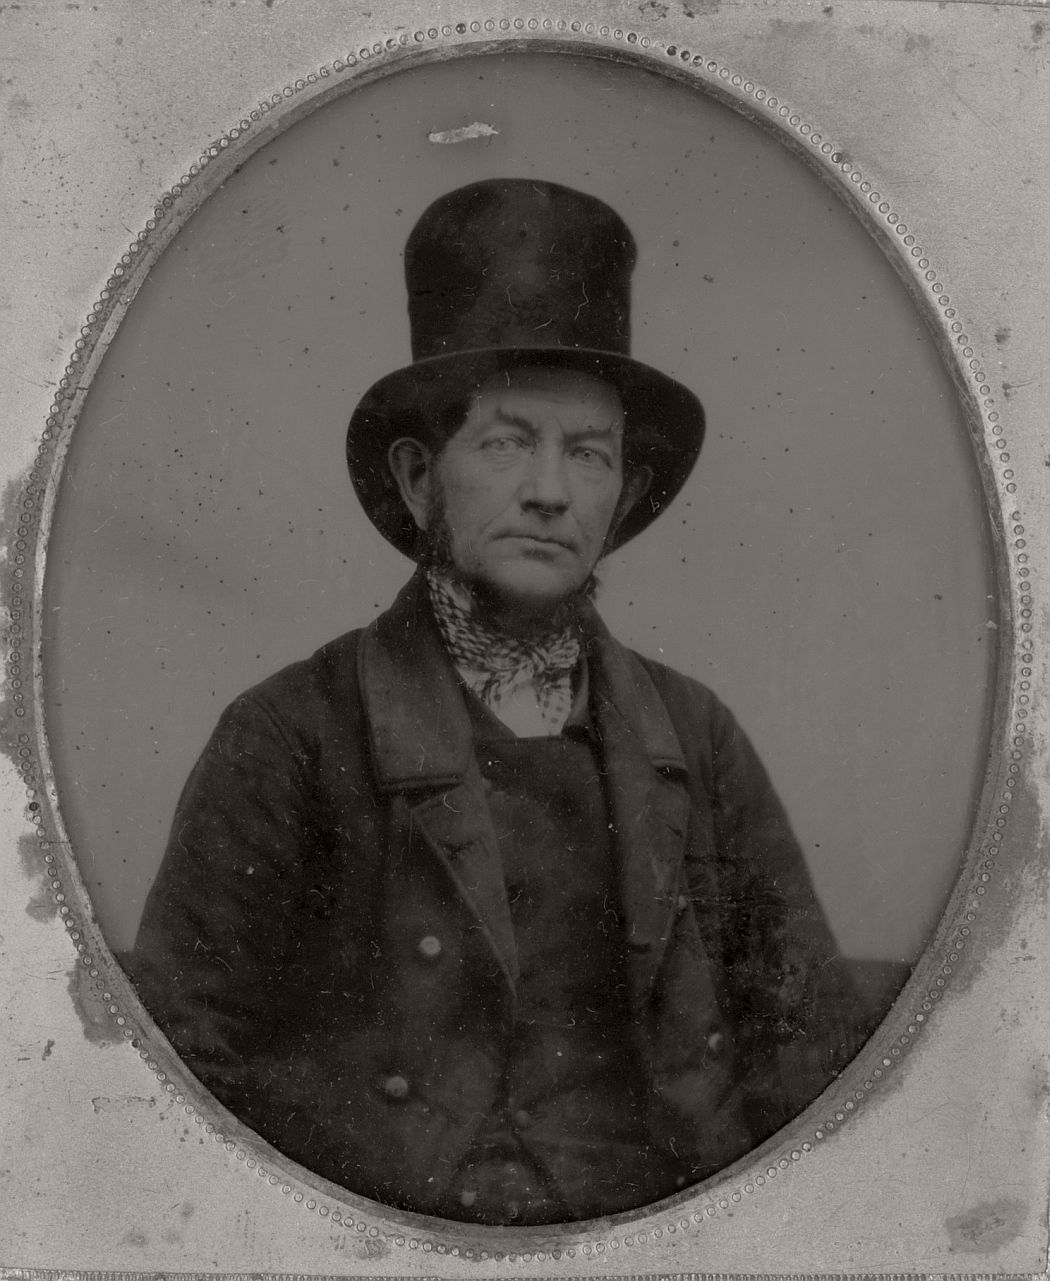 victorian-era-daguerreotype-of-men-in-hat-1850s-xix-century-14